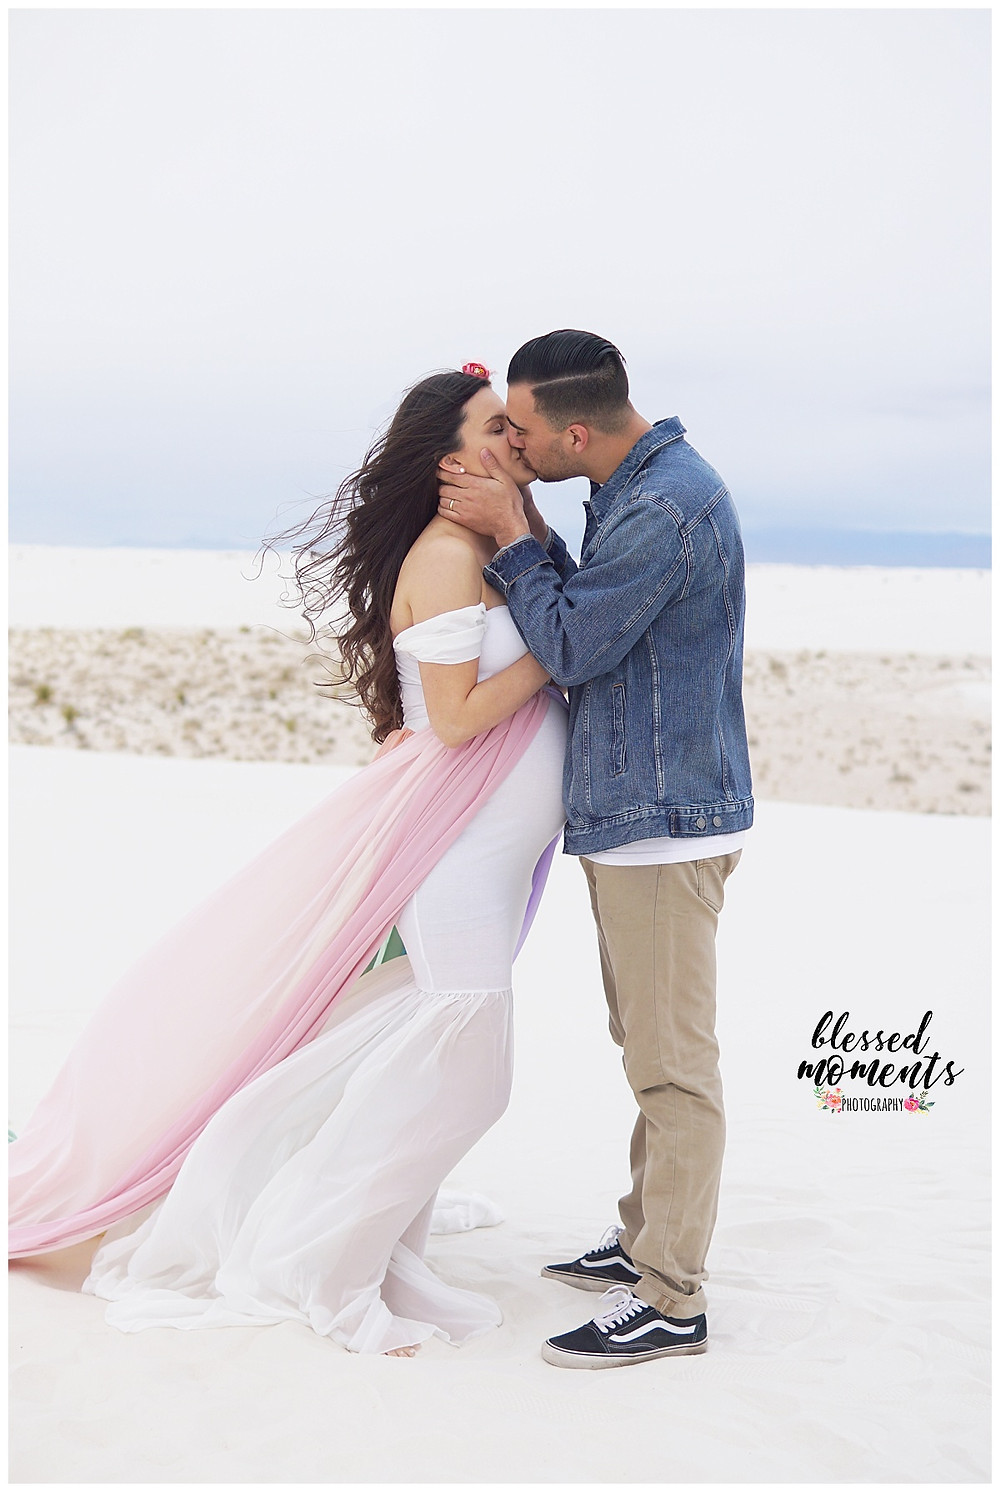 Husband embracing pregnant wife with a kiss at White Sands